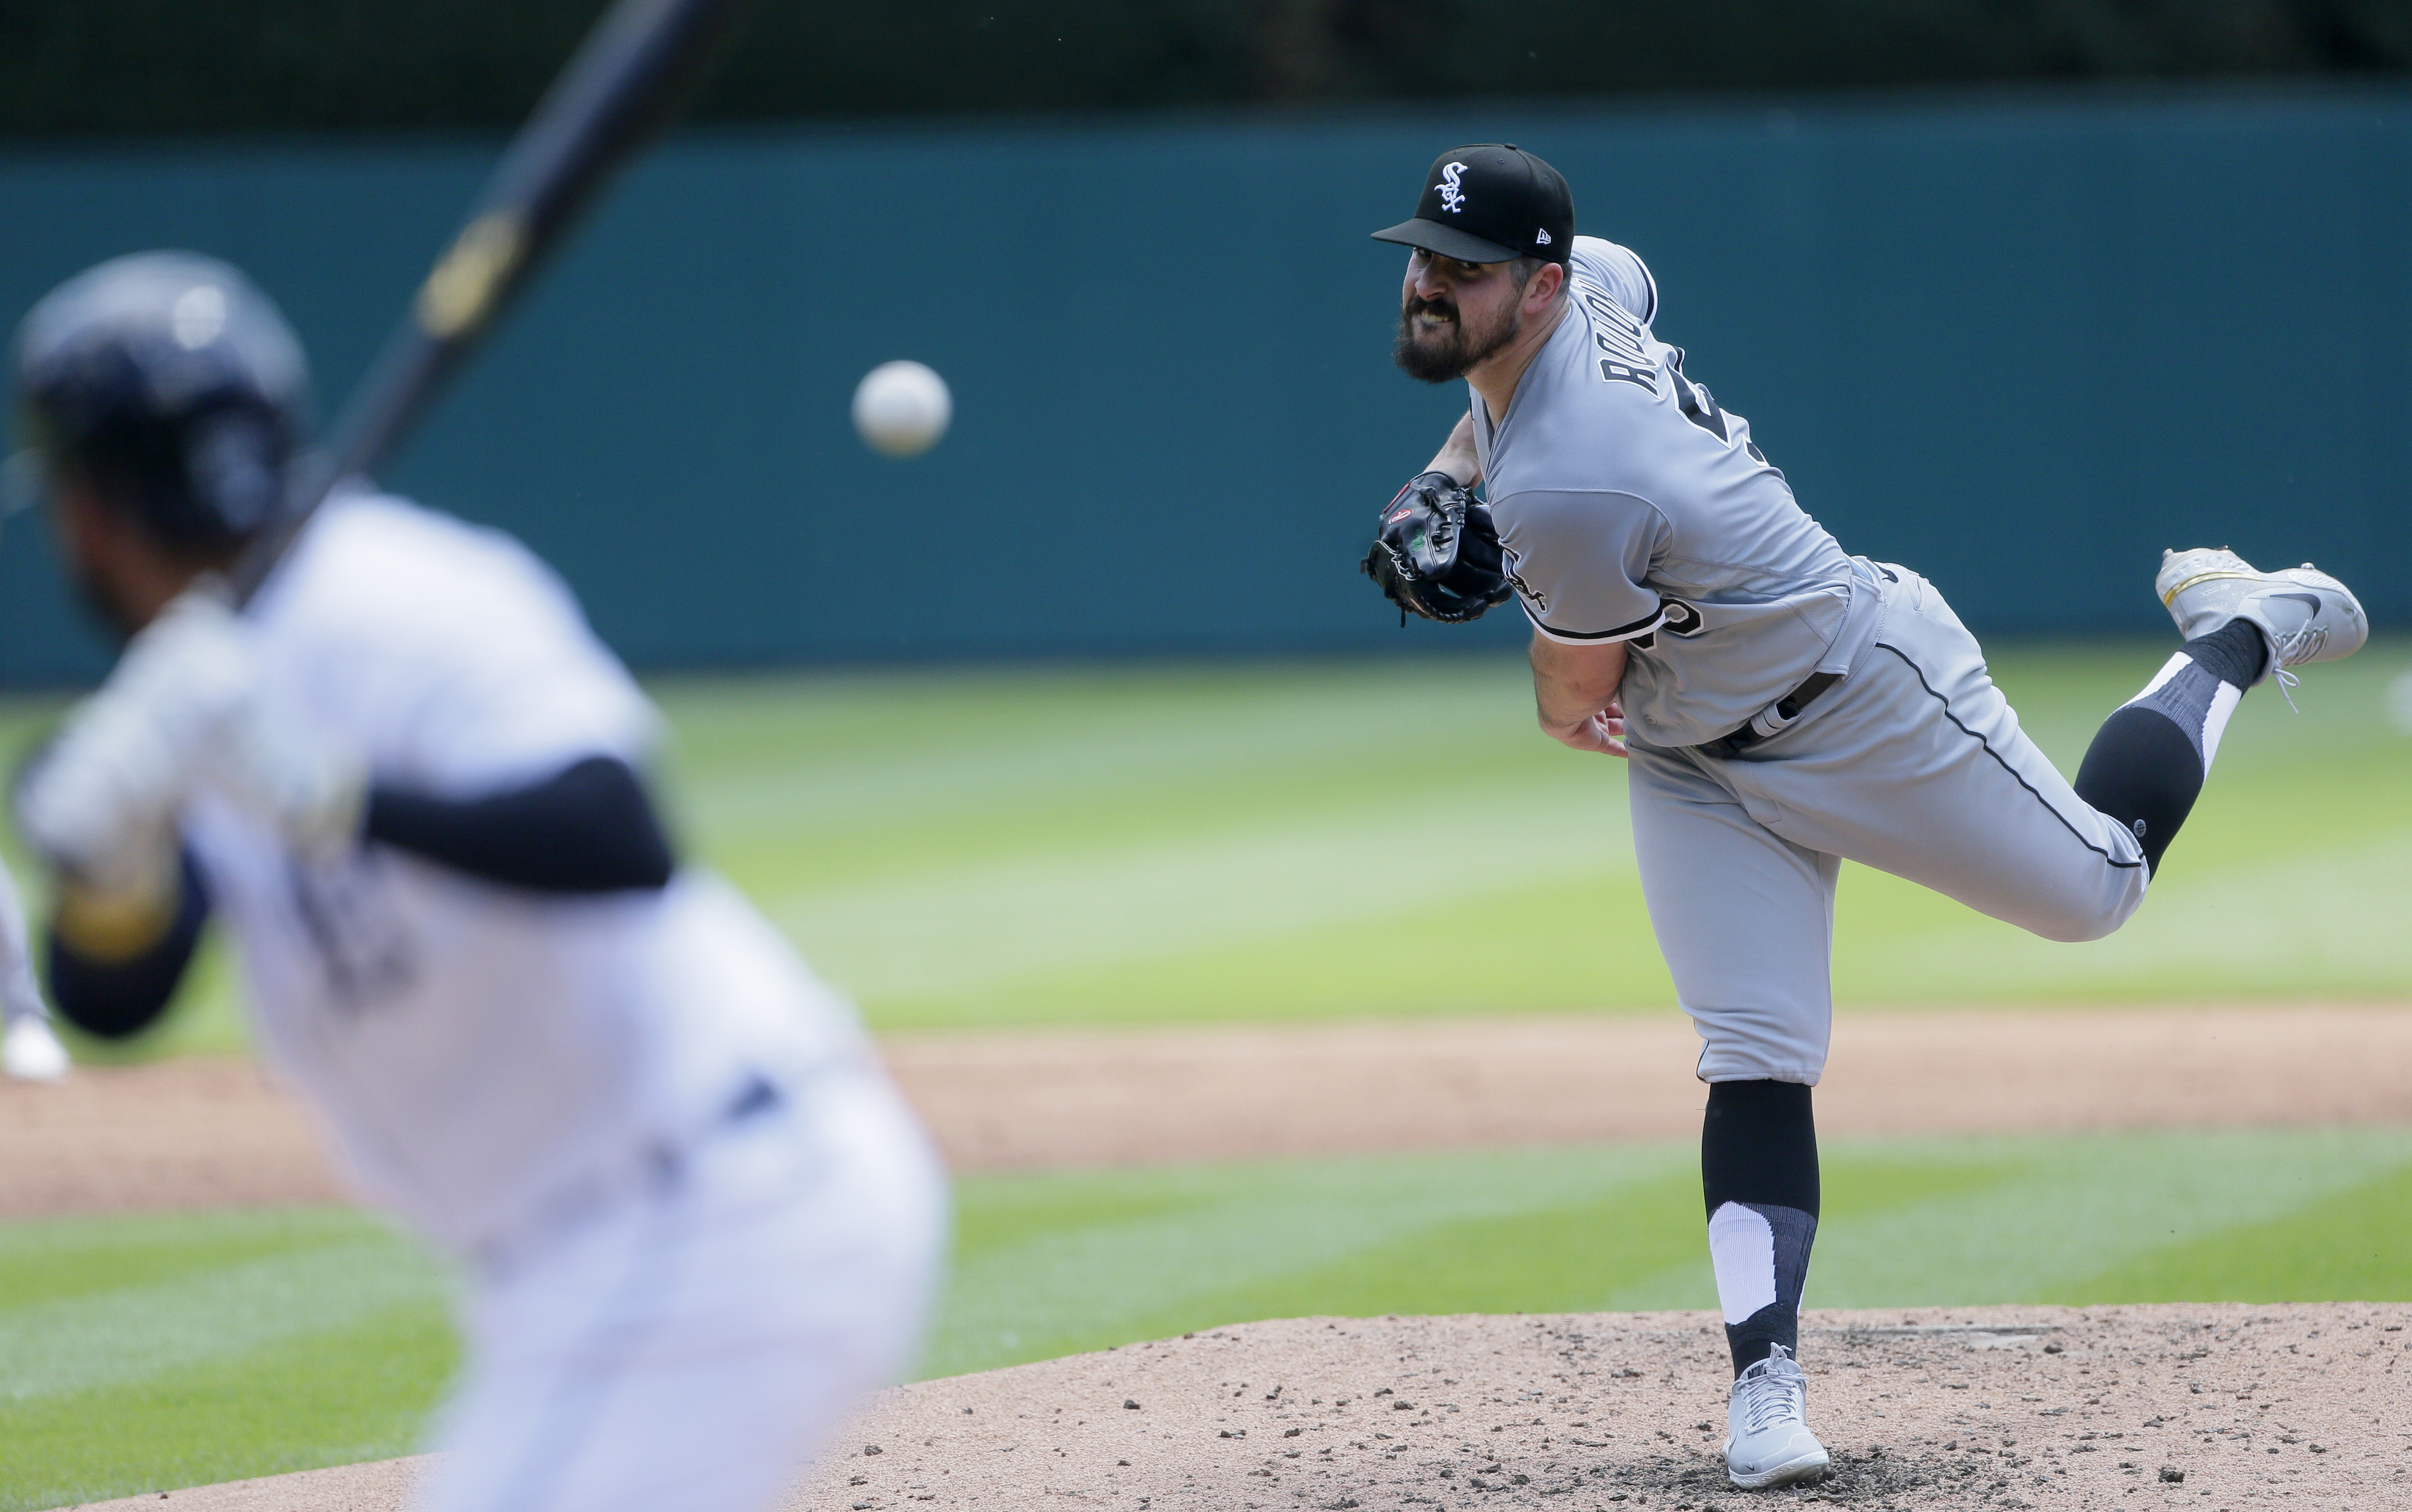 The White Sox' Carlos Rodon is expected to start Thursday's game against the Blue Jays.